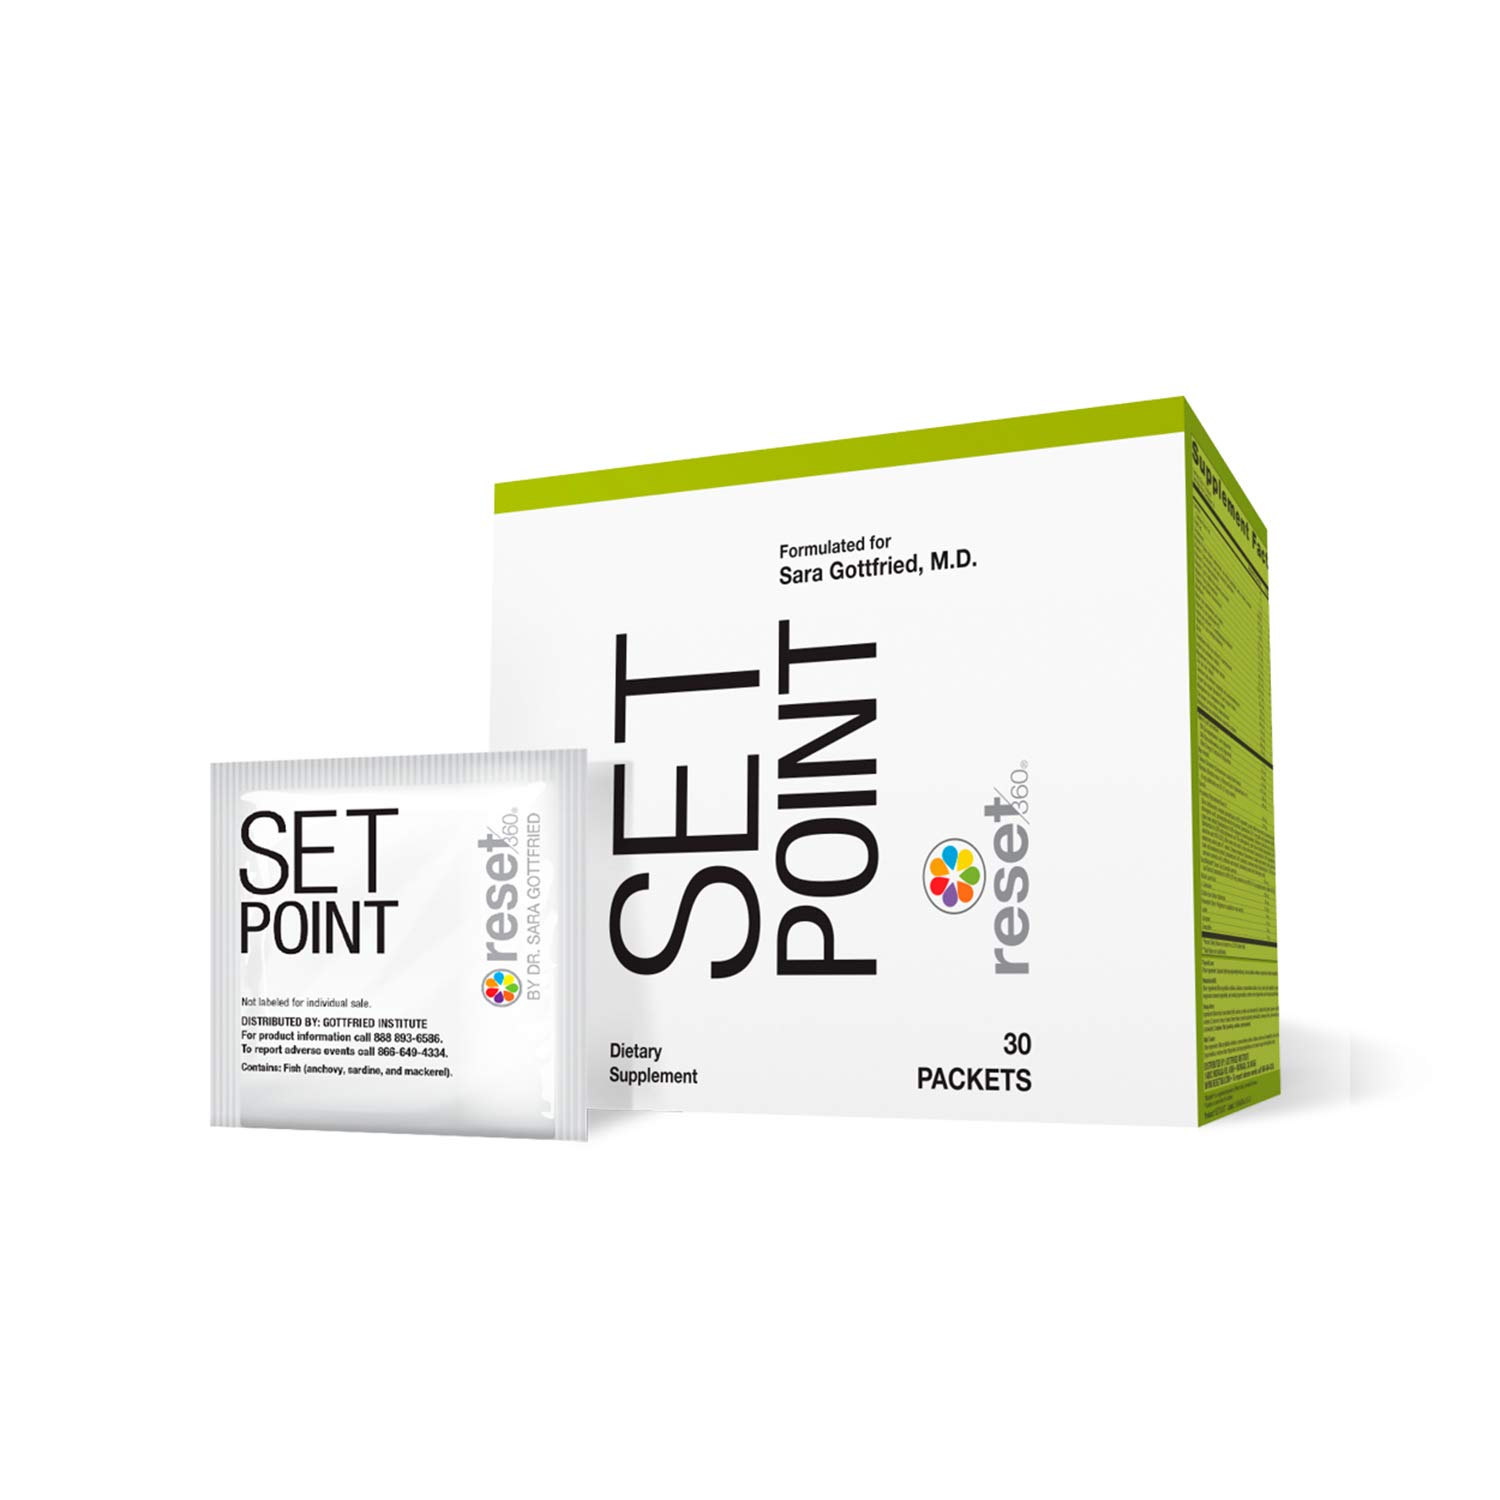 Reset360 Set Point Metabolism-Boosting, Weight Loss Nutritional Supplement, 1 Box with 30 Individual Packets